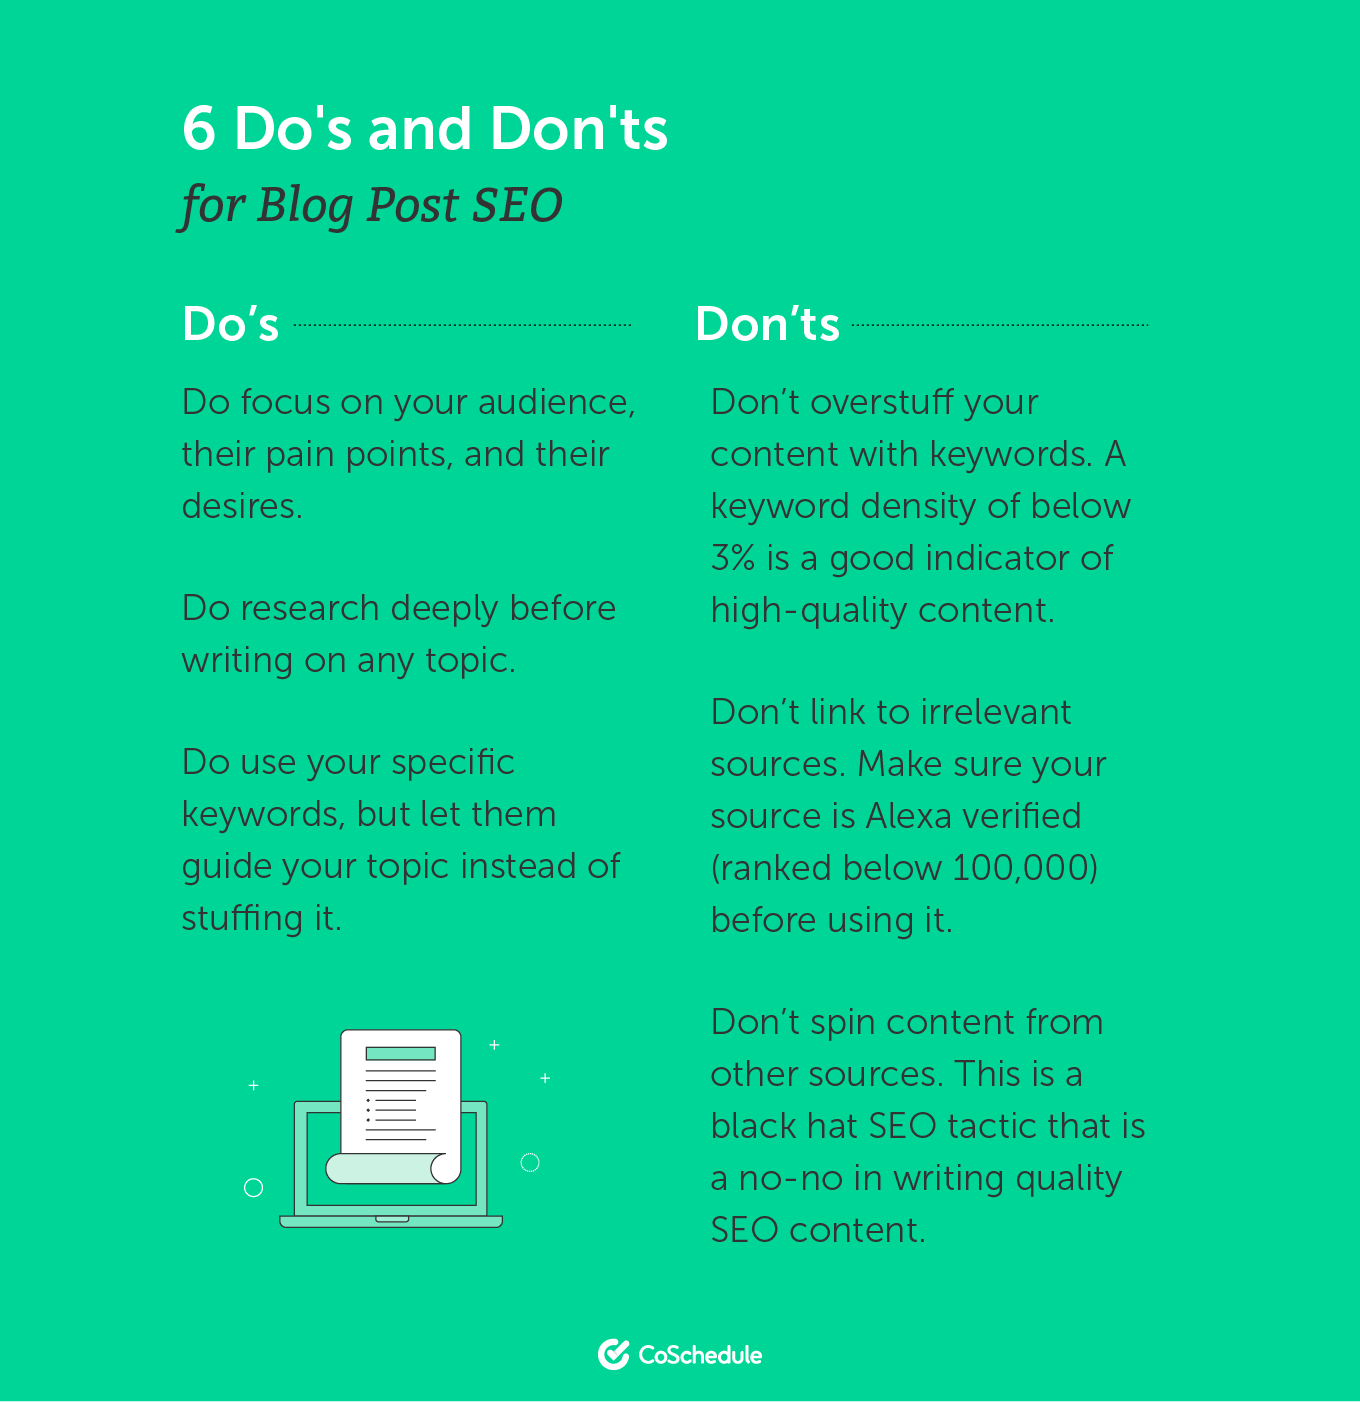 6 Do's and Don'ts for Blog Post SEO